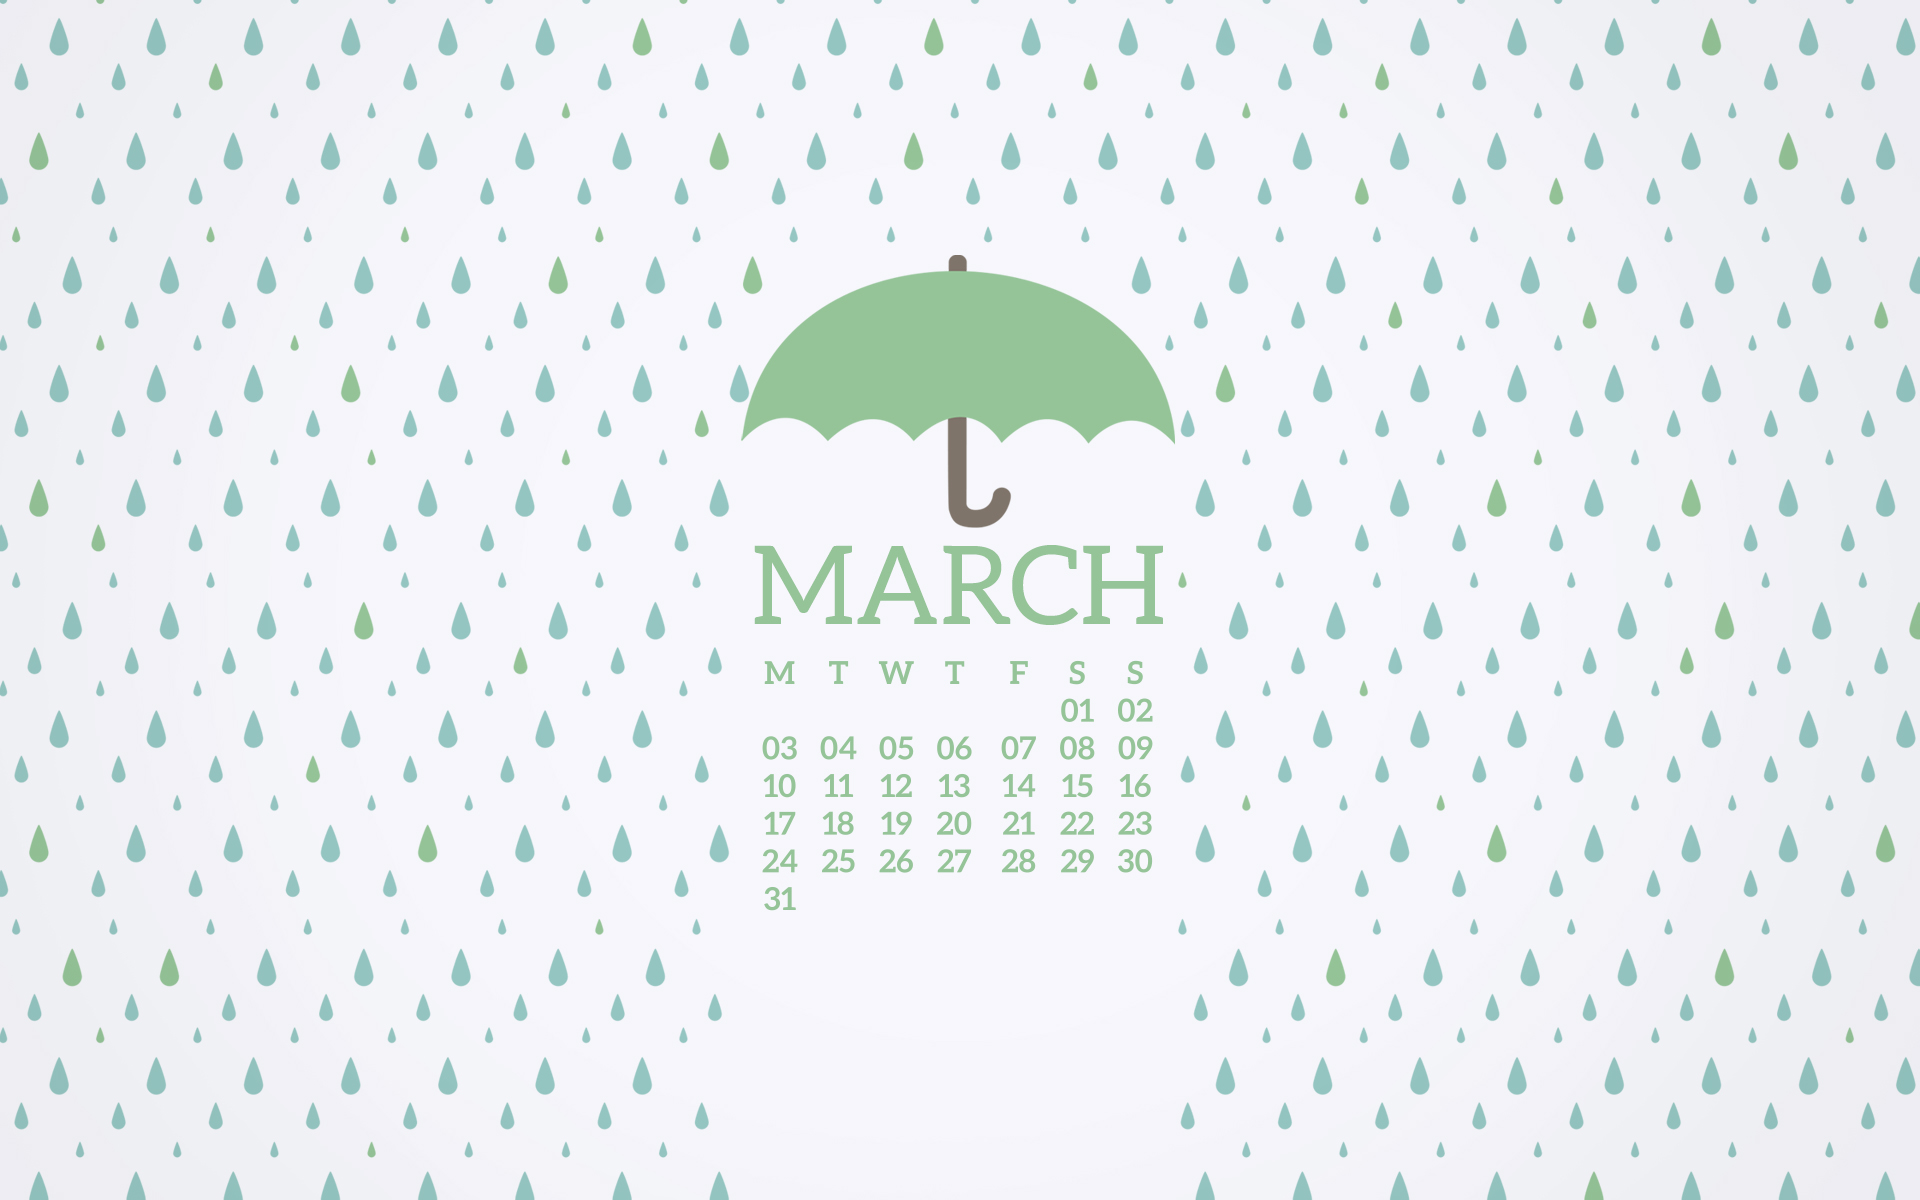 free rainy desktop wallpaper for march 2014